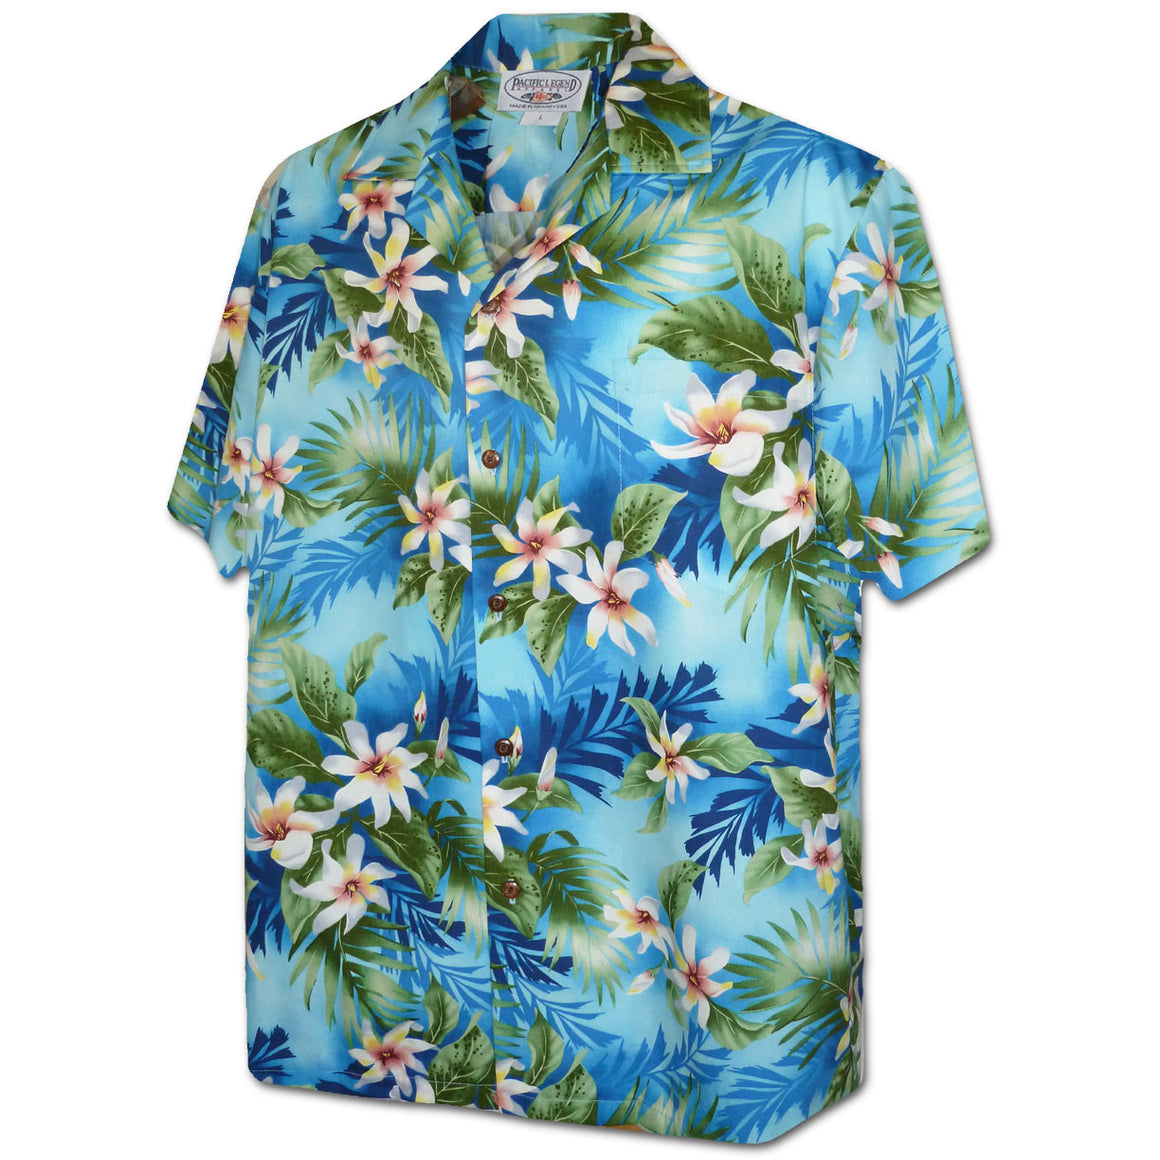 Vibrant Flower Garden Blue Hawaiian Shirt